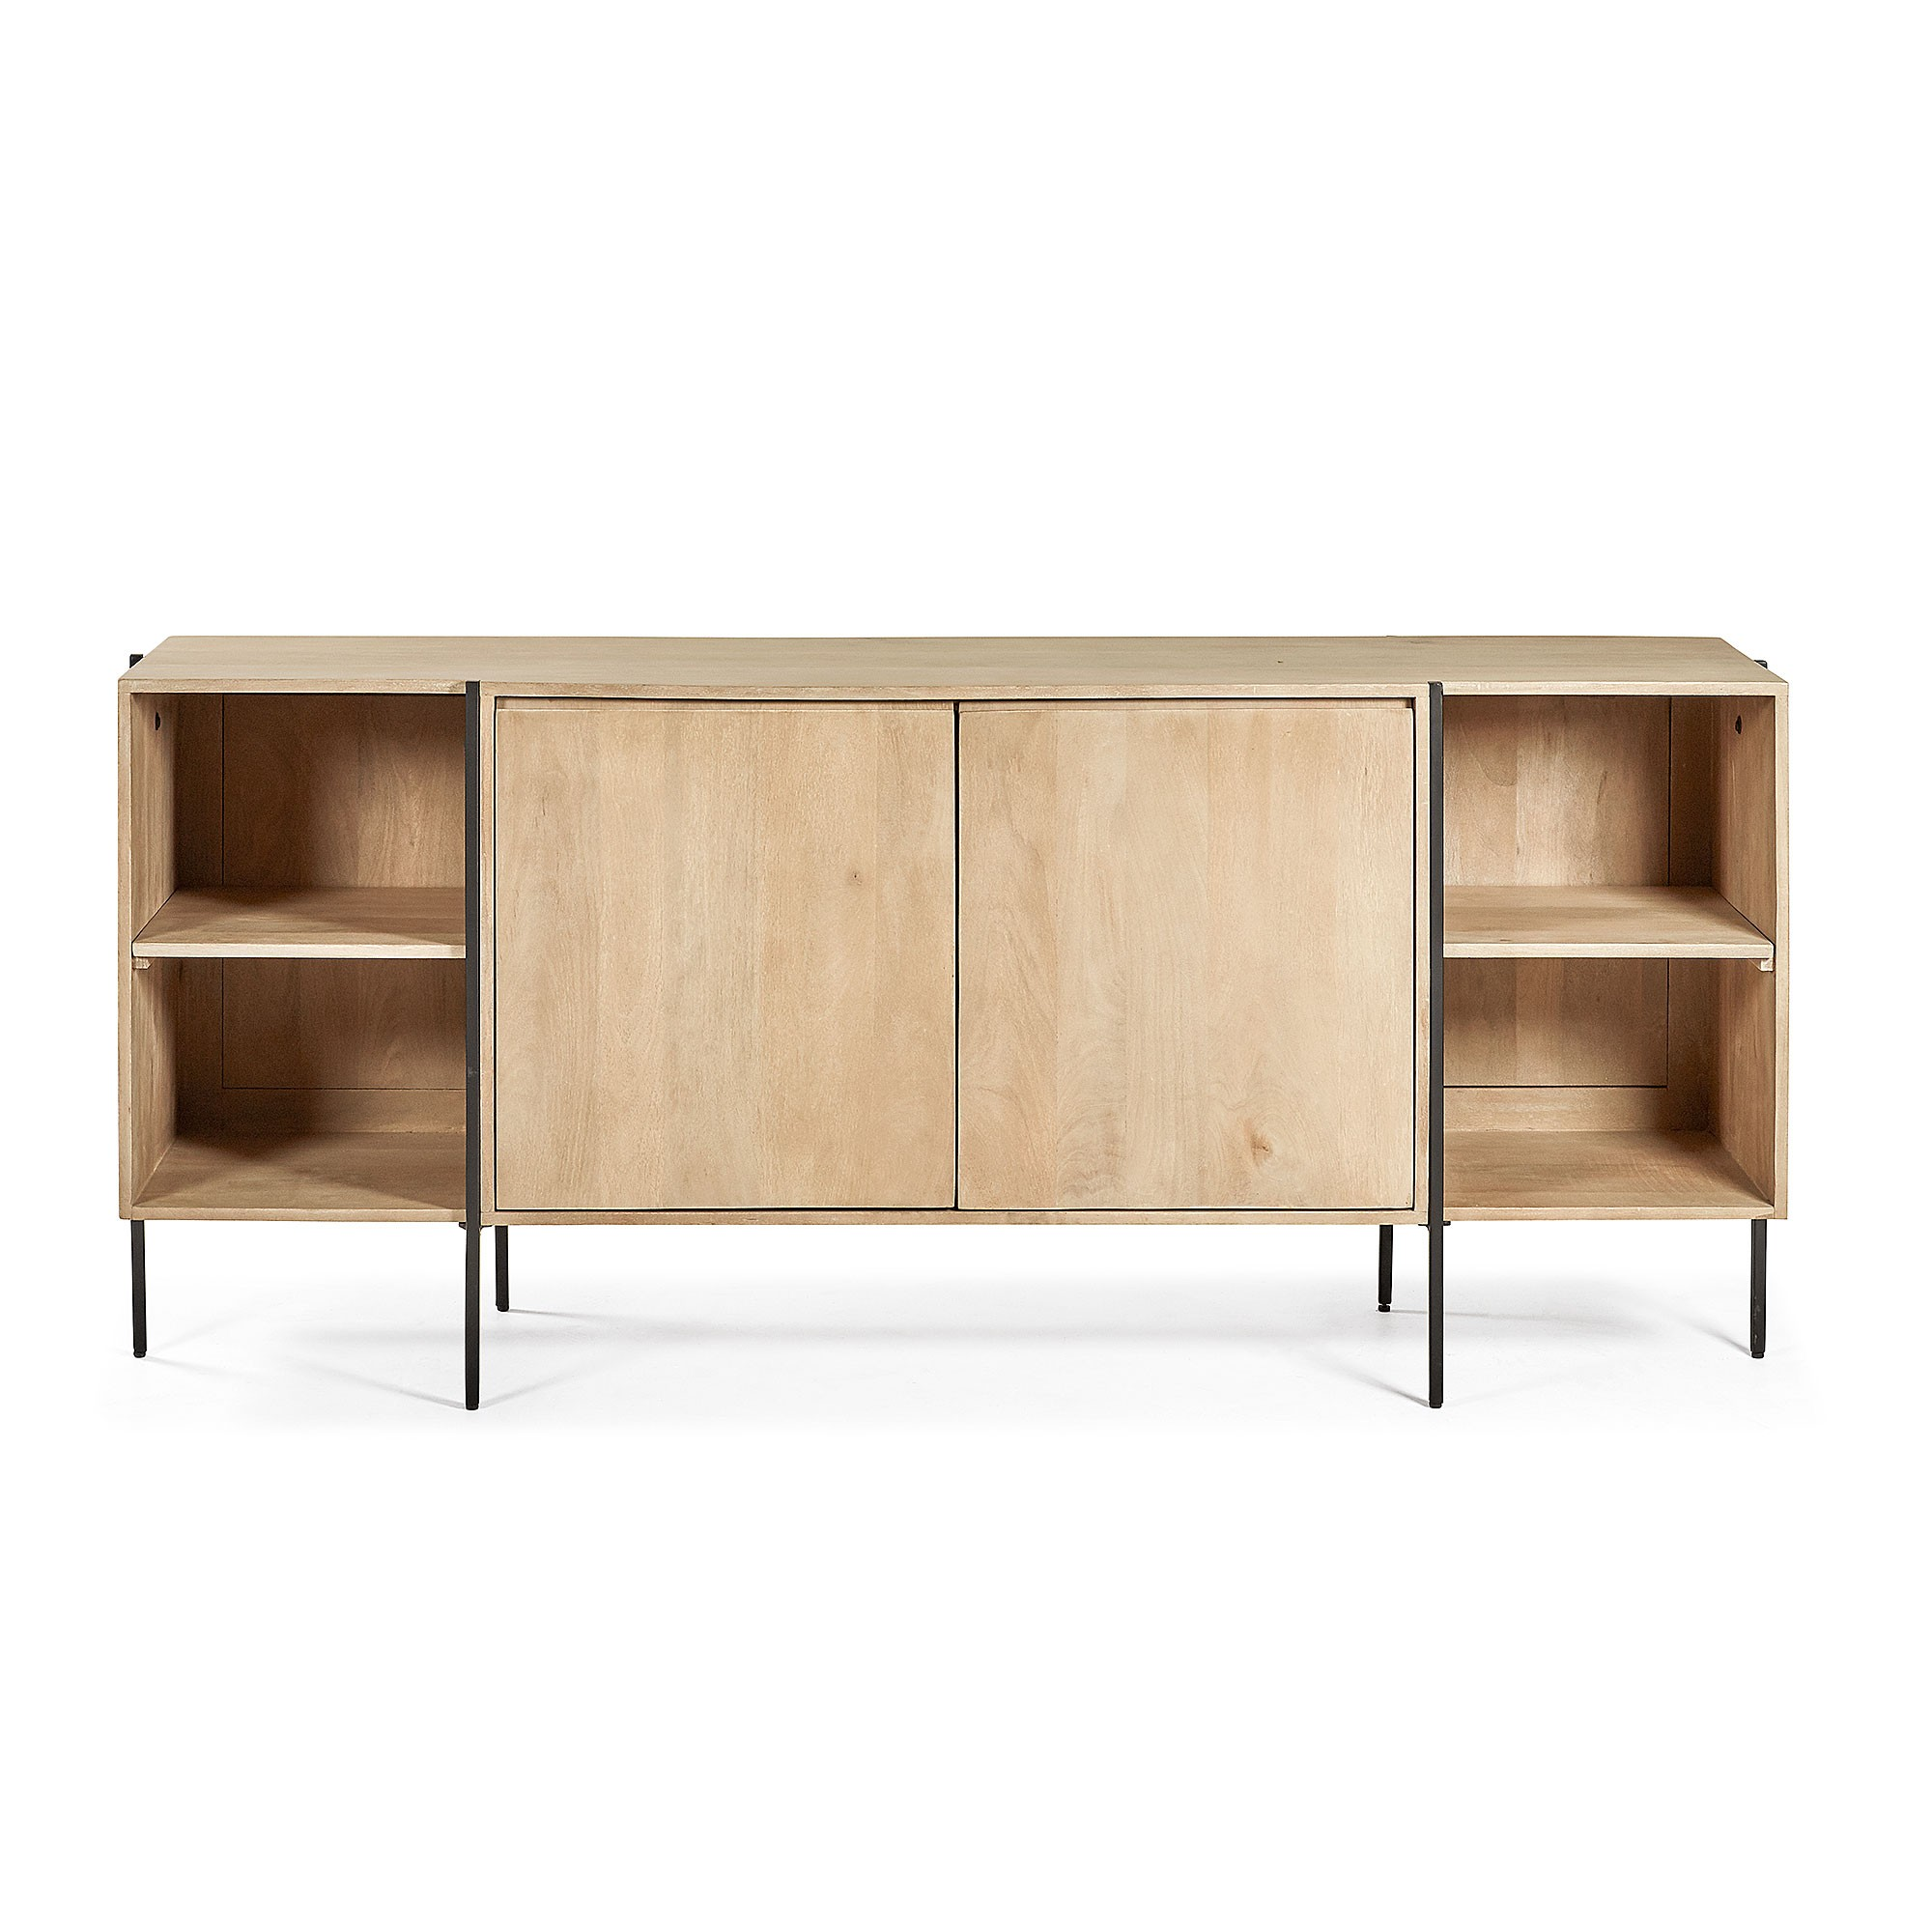 Aparador Mango Wood & Iron 2 Door Sideboard, 185cm